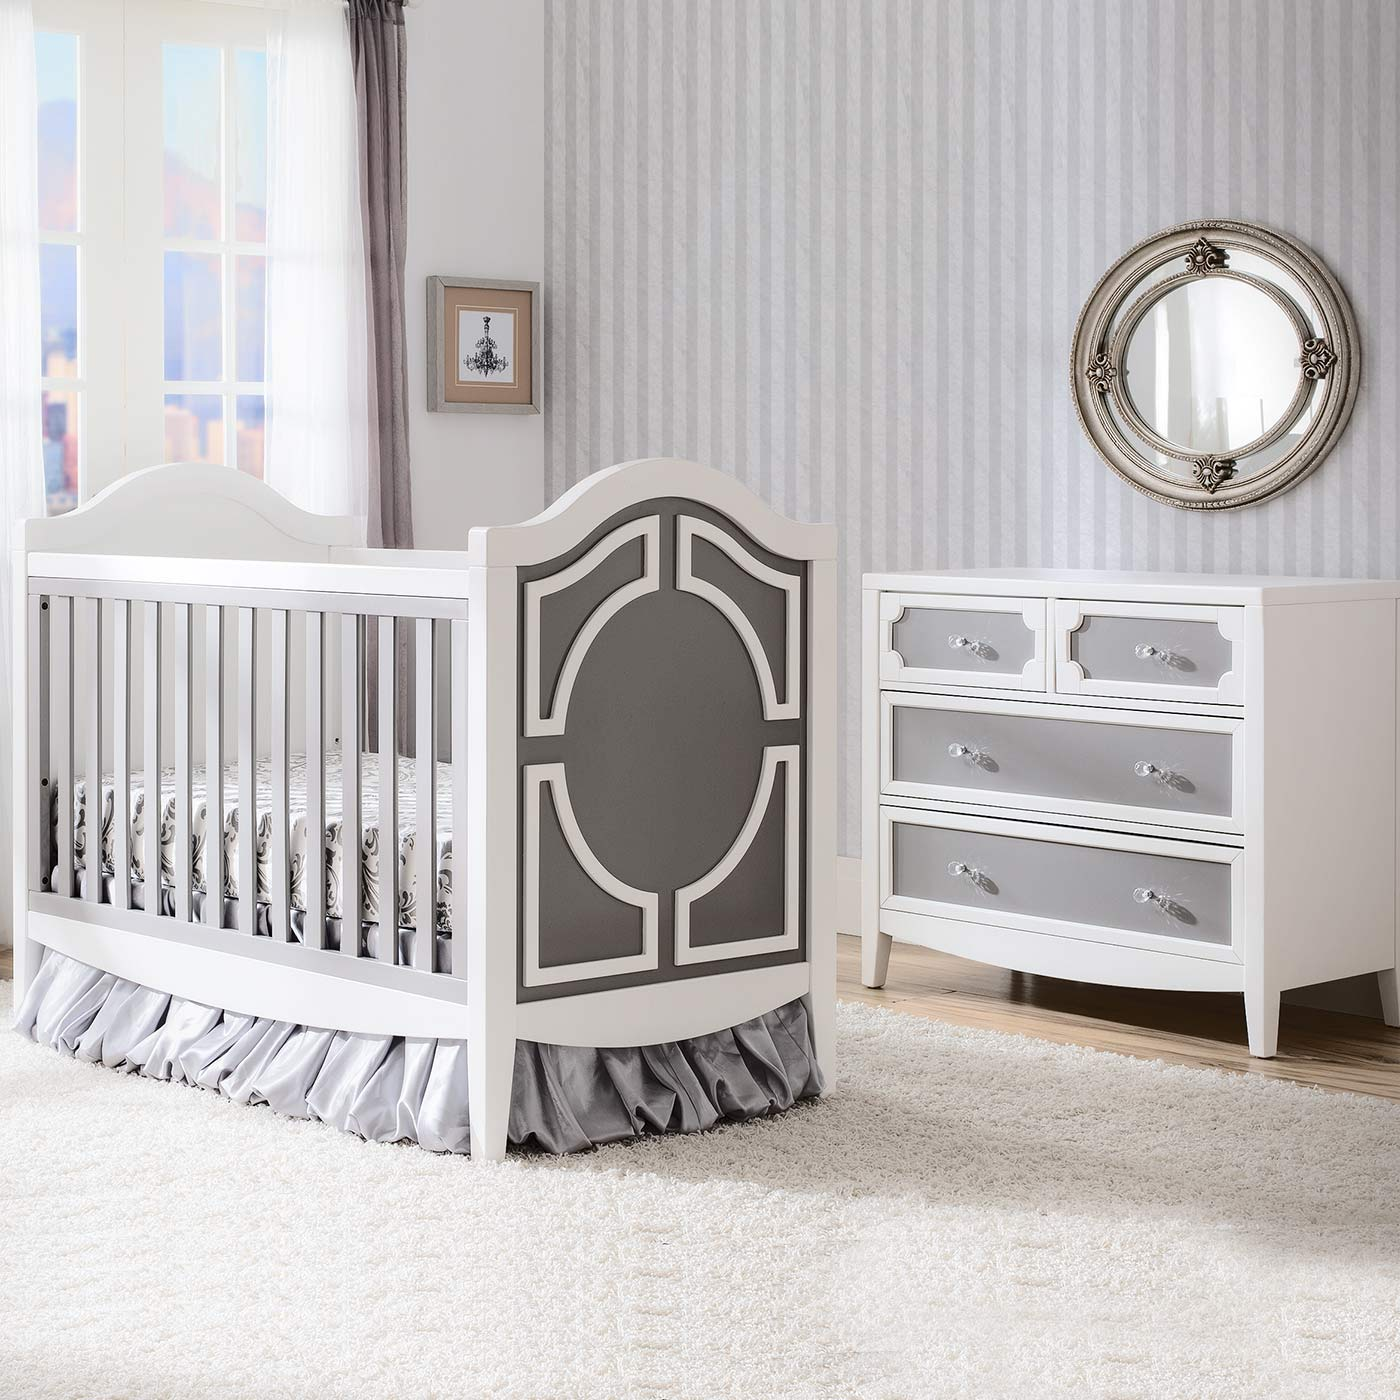 Simmons Hollywood 2 Piece Nursery Set Convertible Crib And 4 Drawer Dresser In White Grey Free Shipping